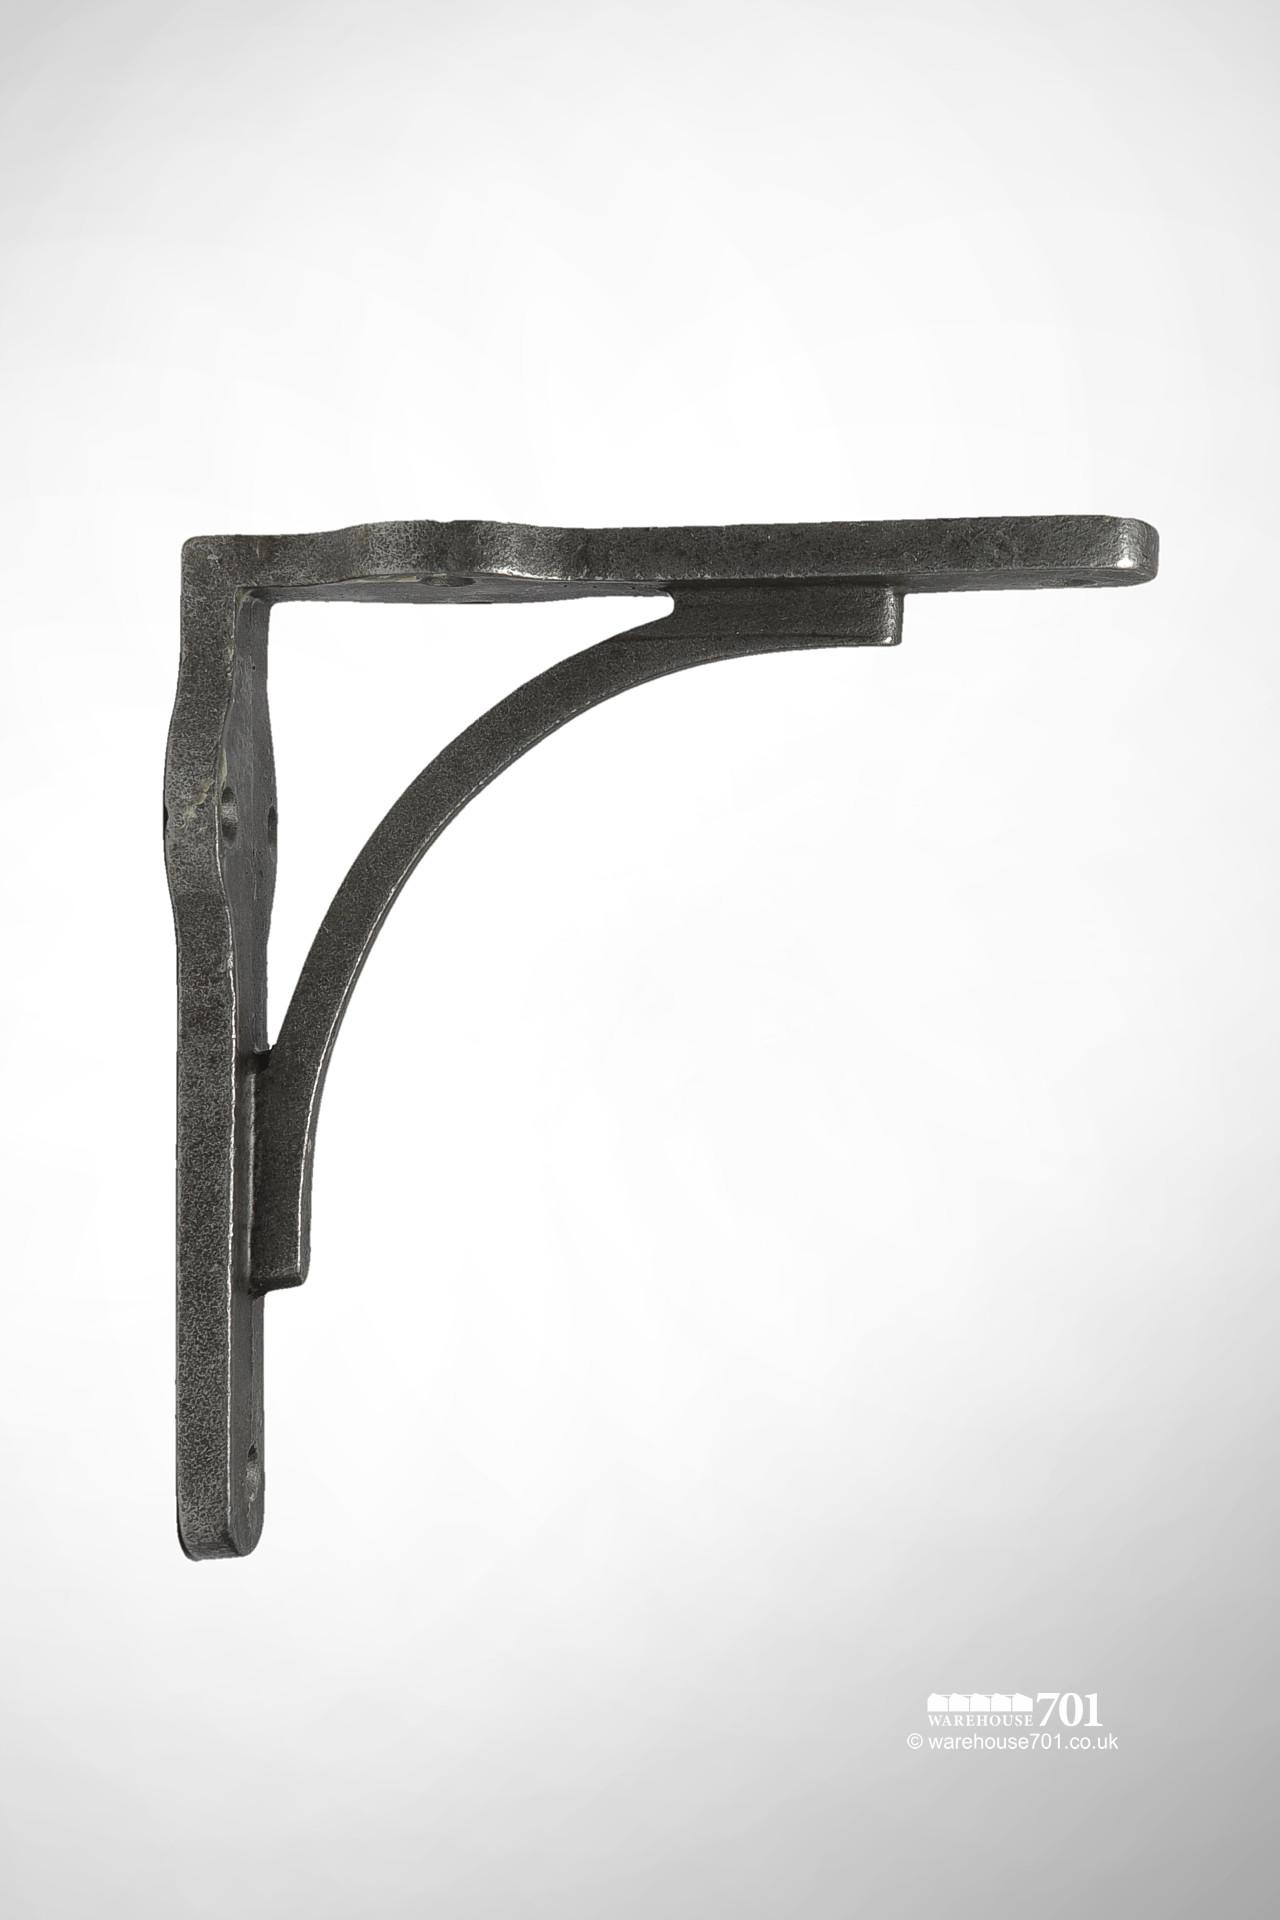 New Cast Iron Shelf or Wall Bracket - Gallows Design - Small #2